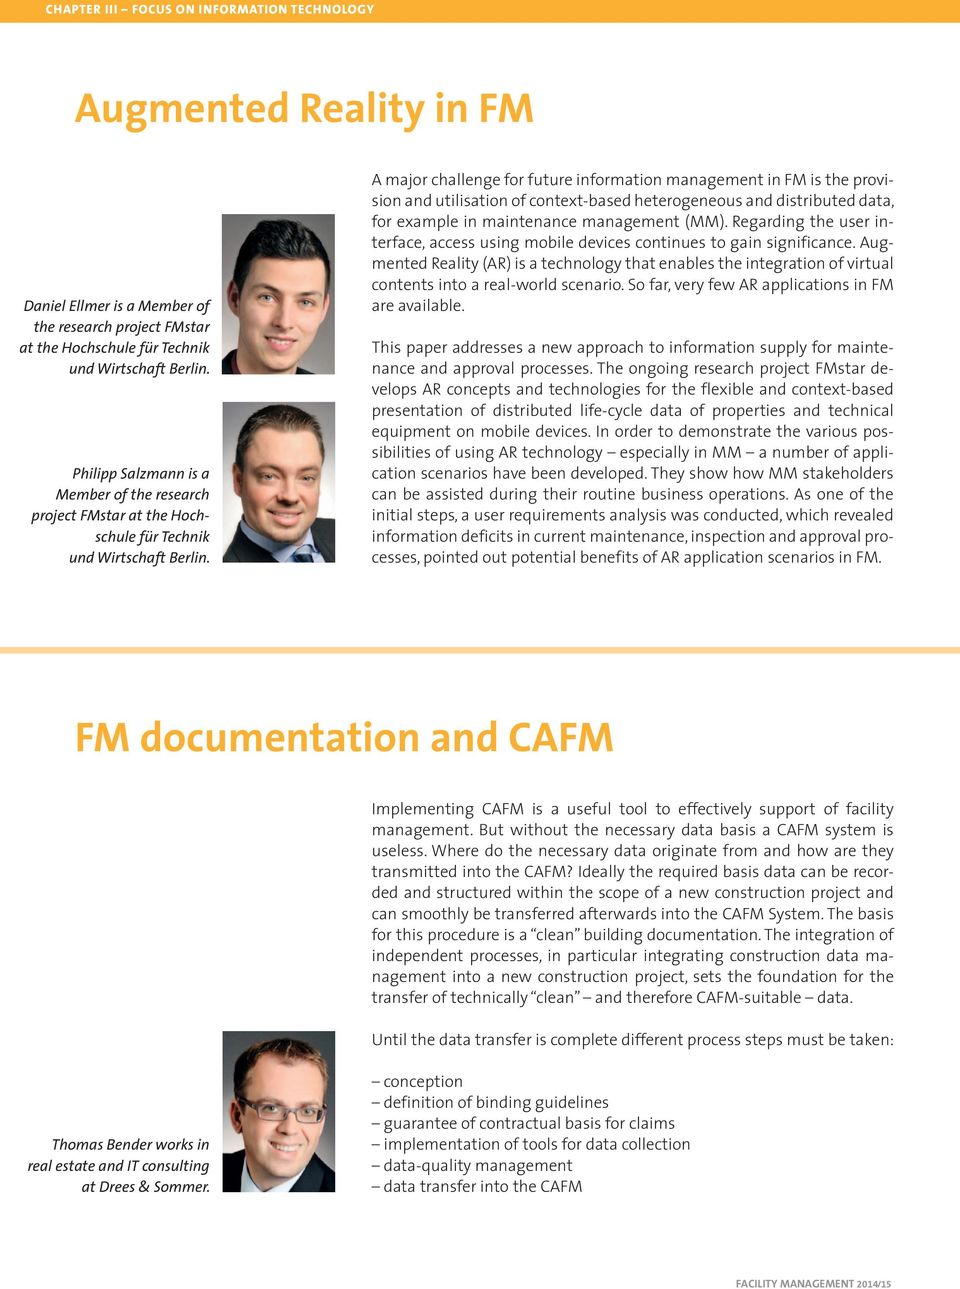 A major challenge for future information management in FM is the provision and utilisation of context-based heterogeneous and distributed data, for example in maintenance management (MM).